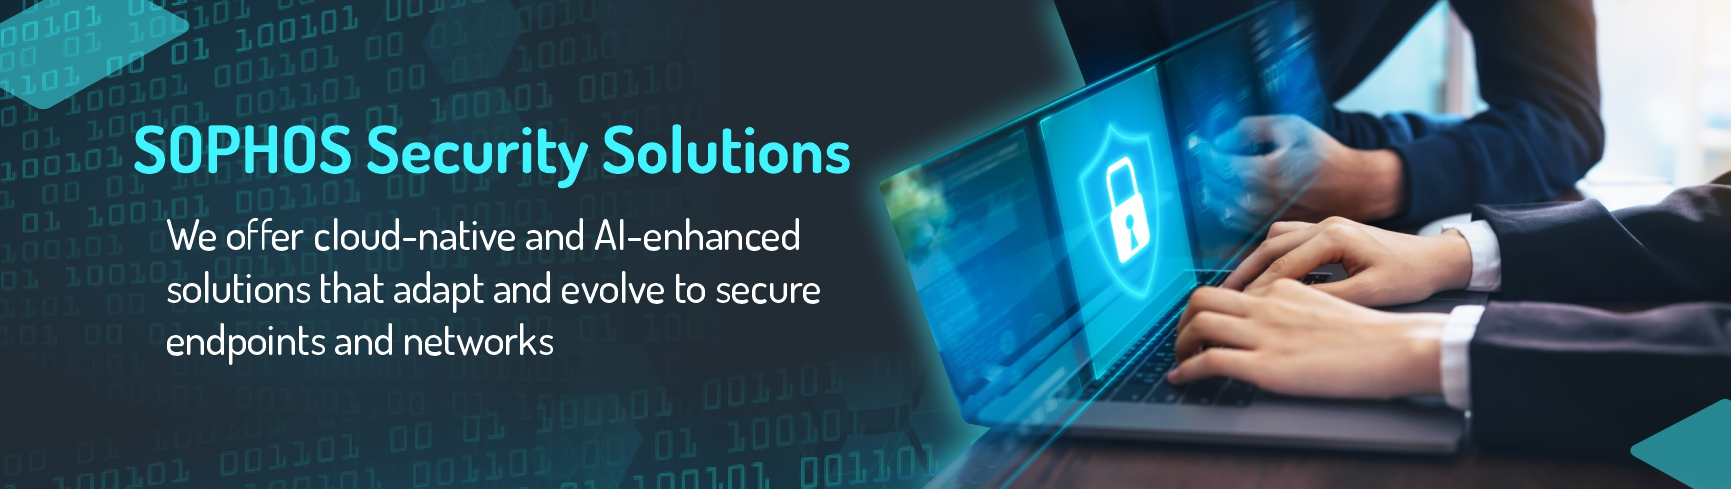 SOPHOS Security Solutions